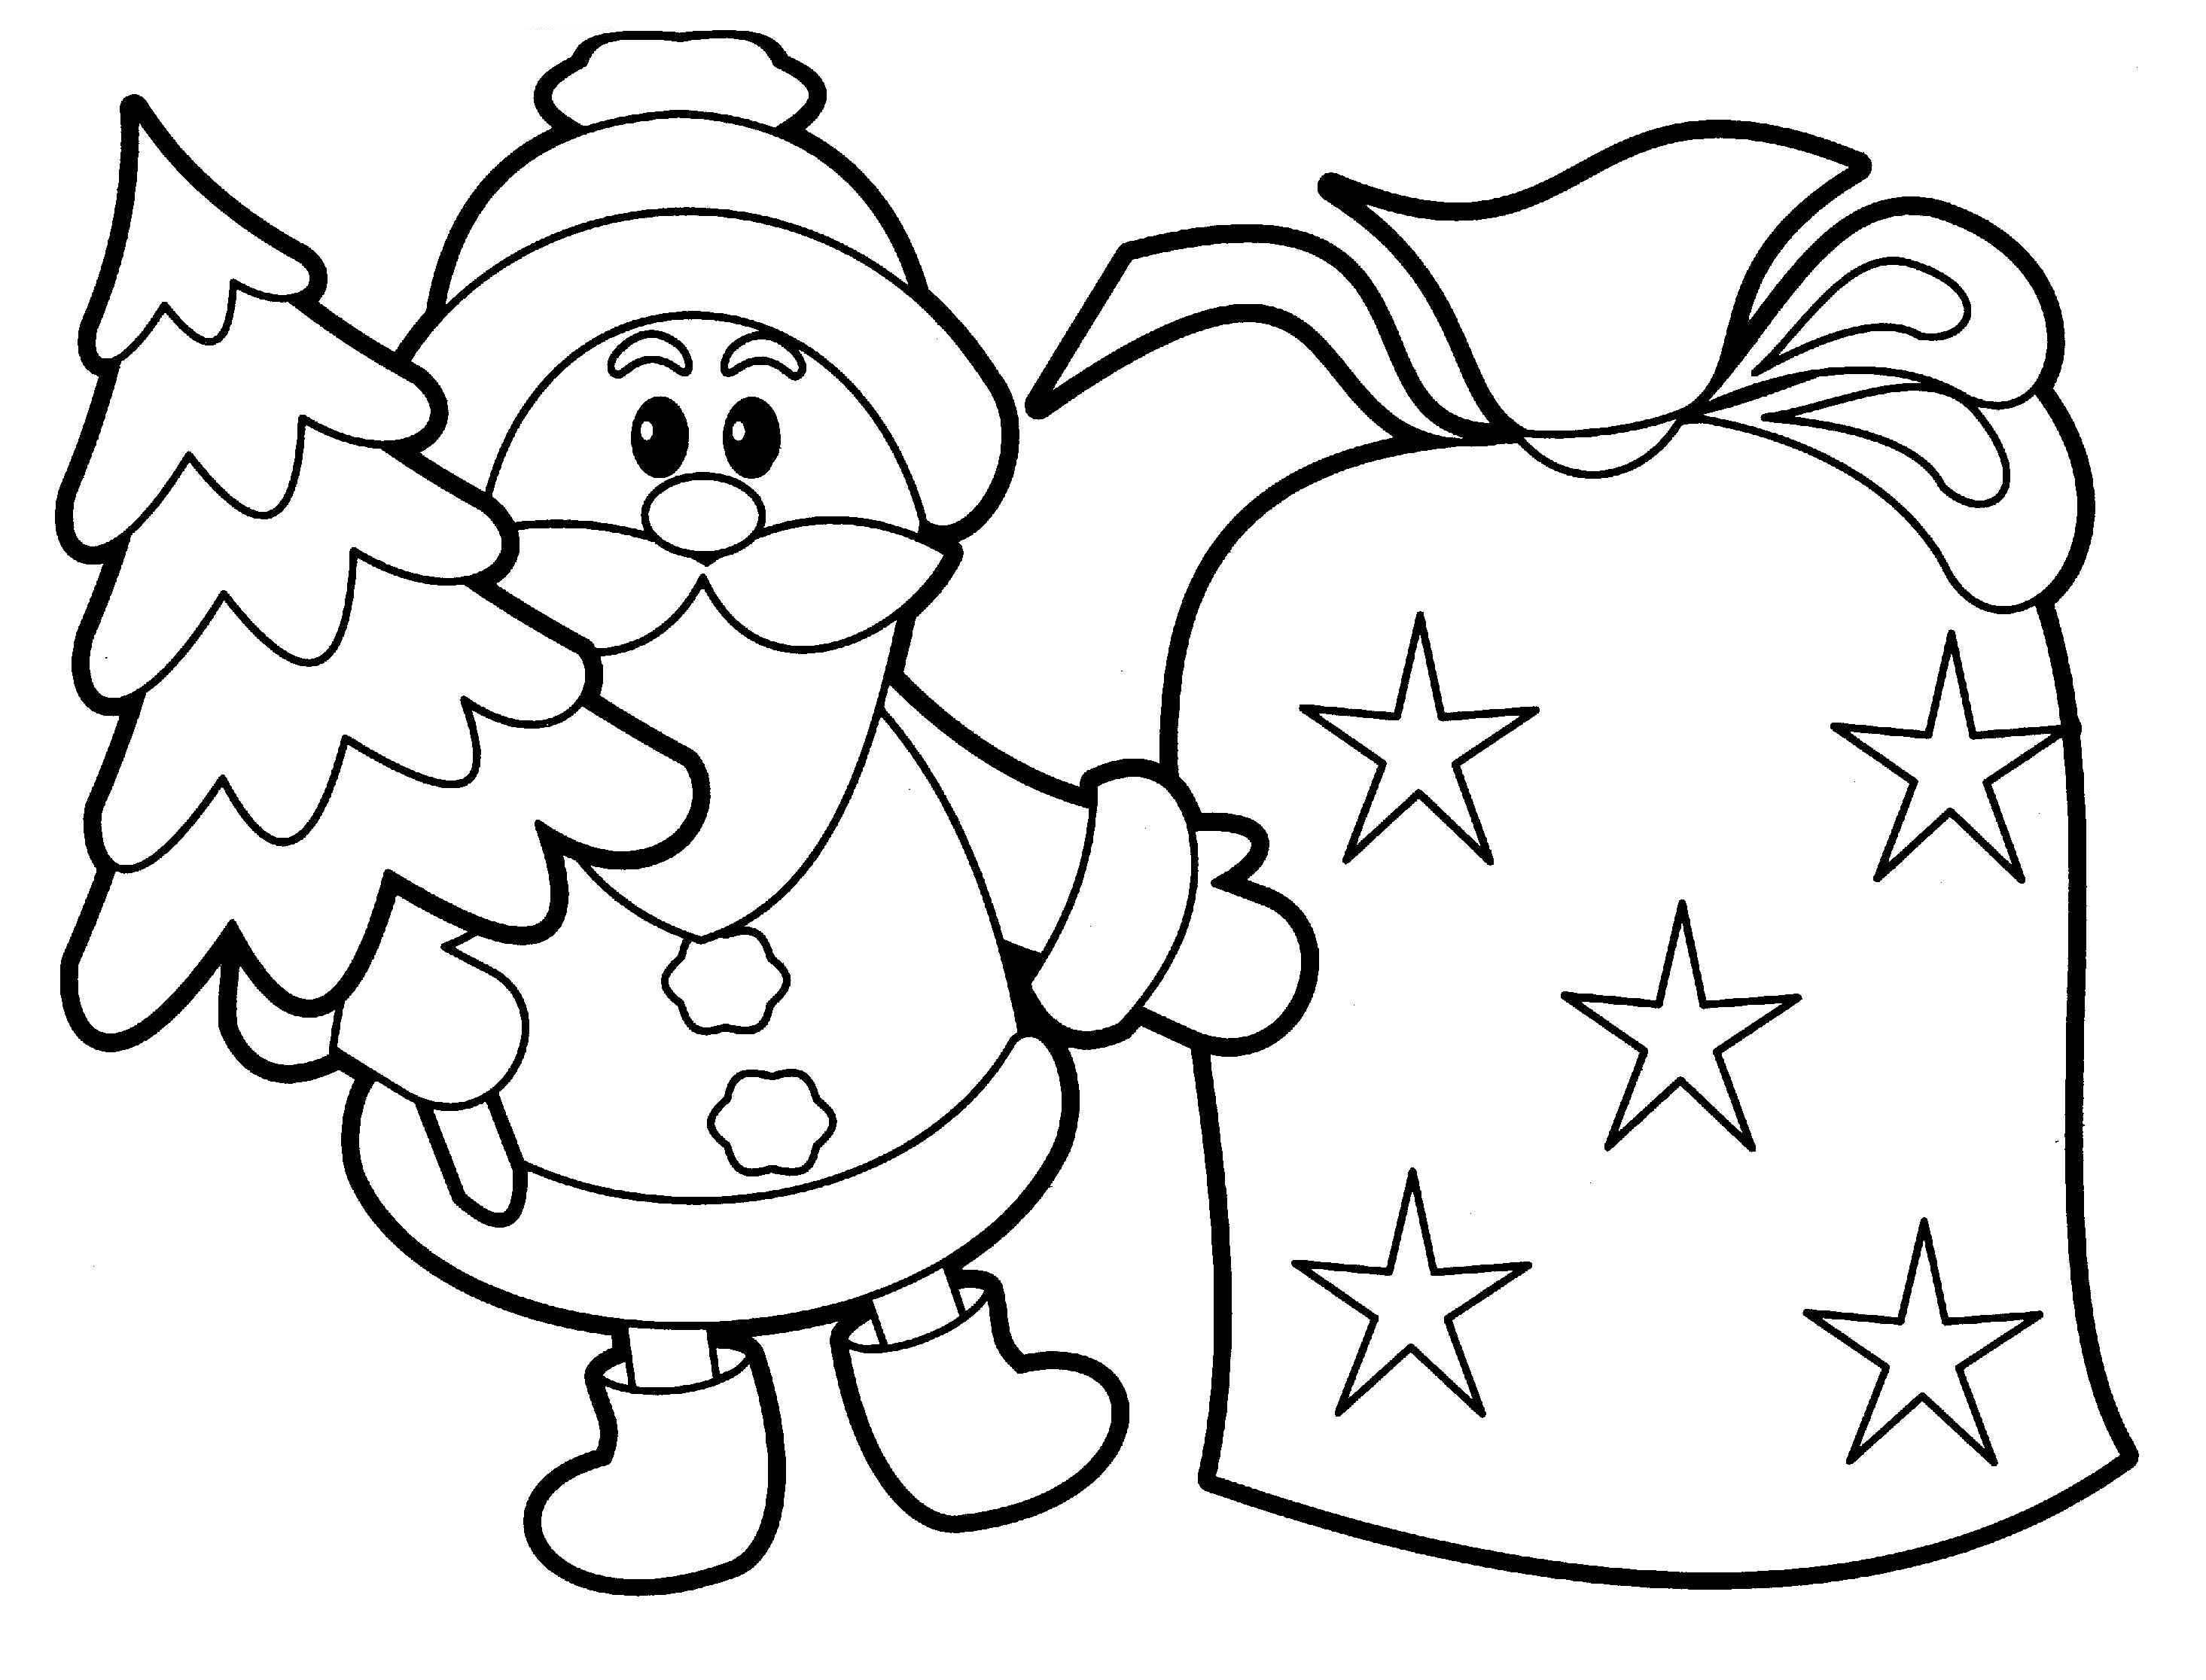 free holiday coloring pages cute animal christmas coloring pages download and print holiday coloring pages free